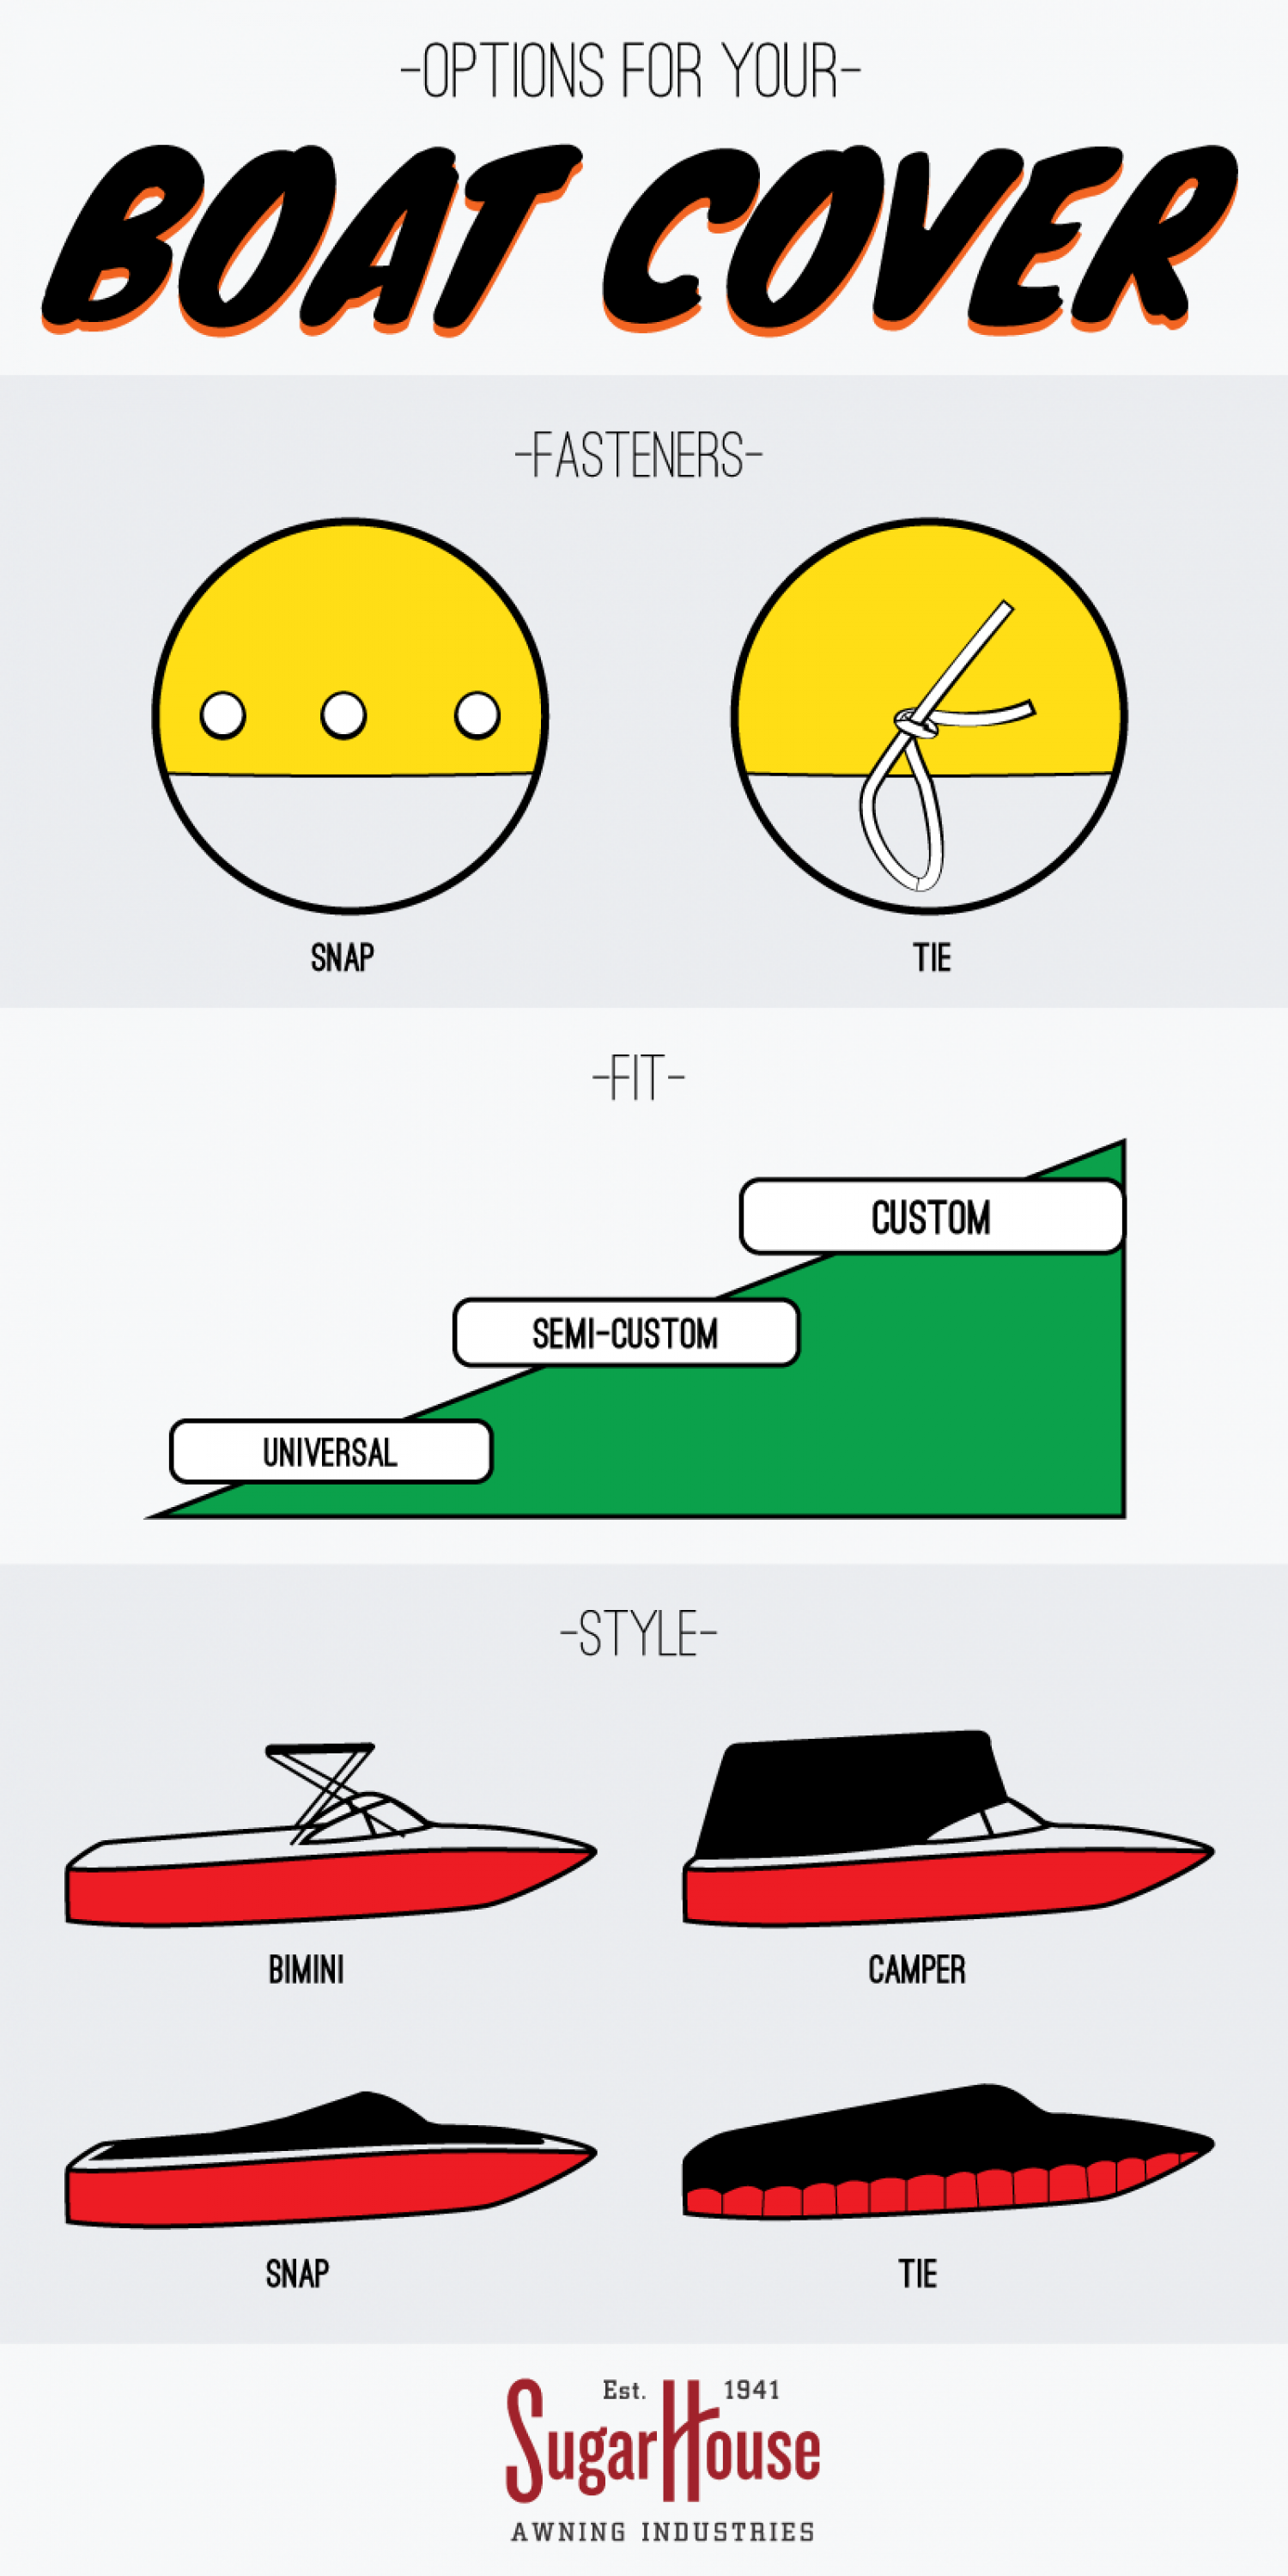 Options for your Boat Cover Infographic